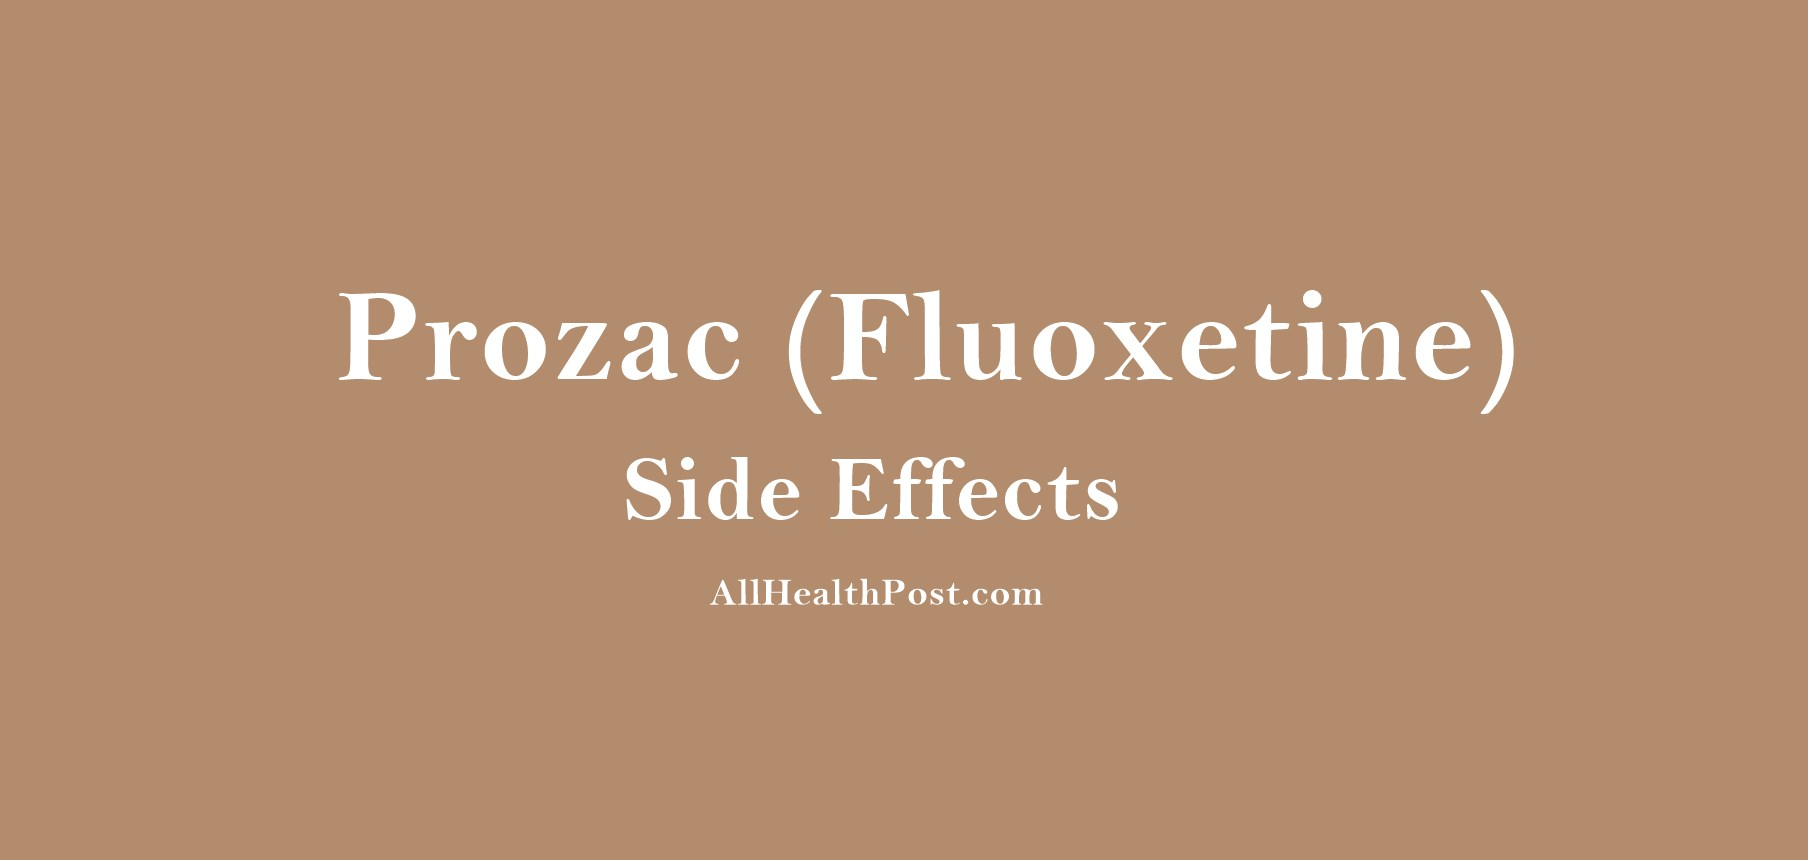 Fluoxetine Common Side Effects